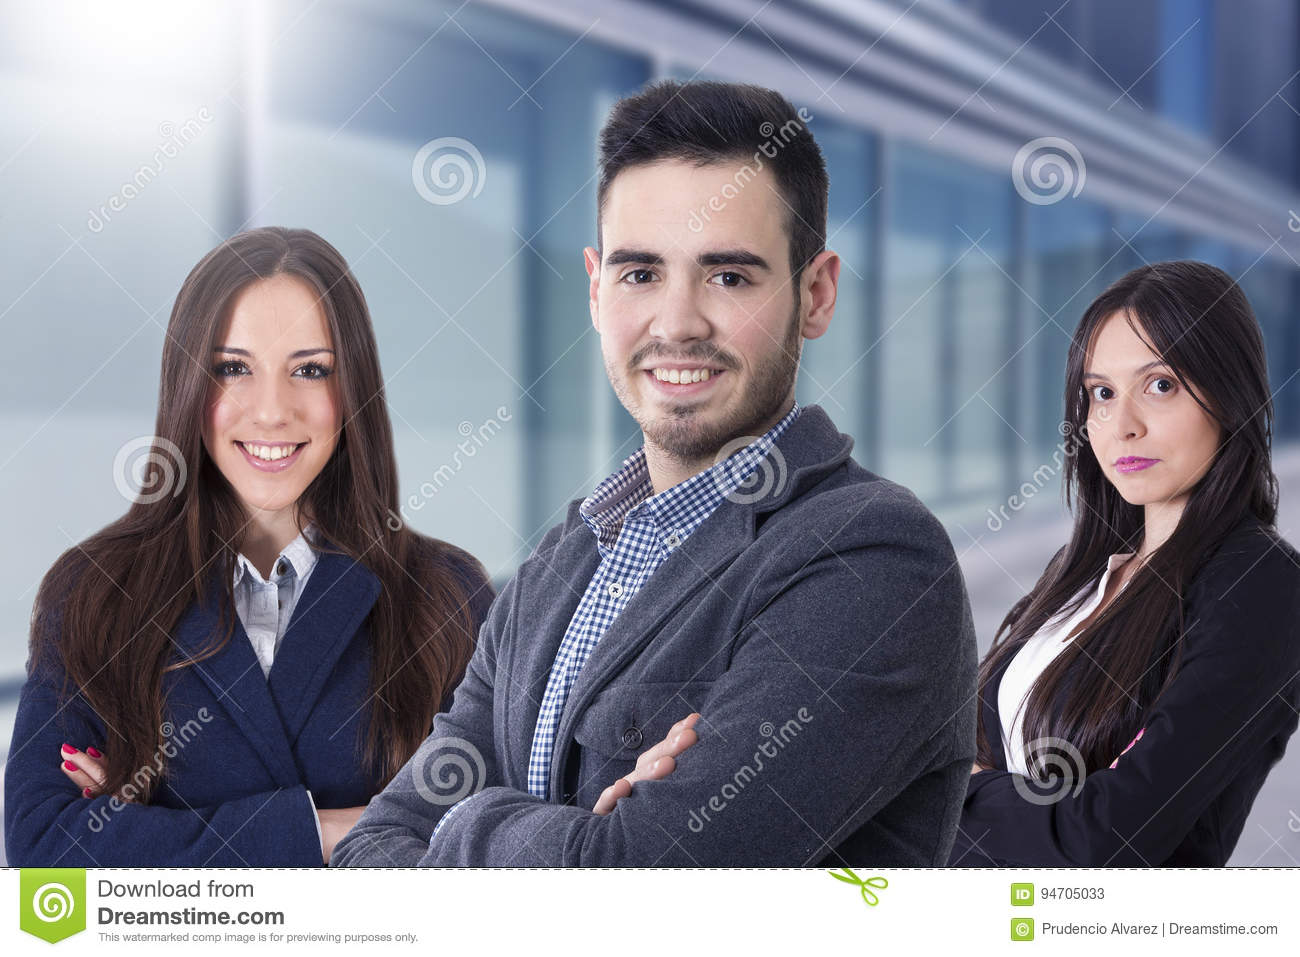 Young team of business executives